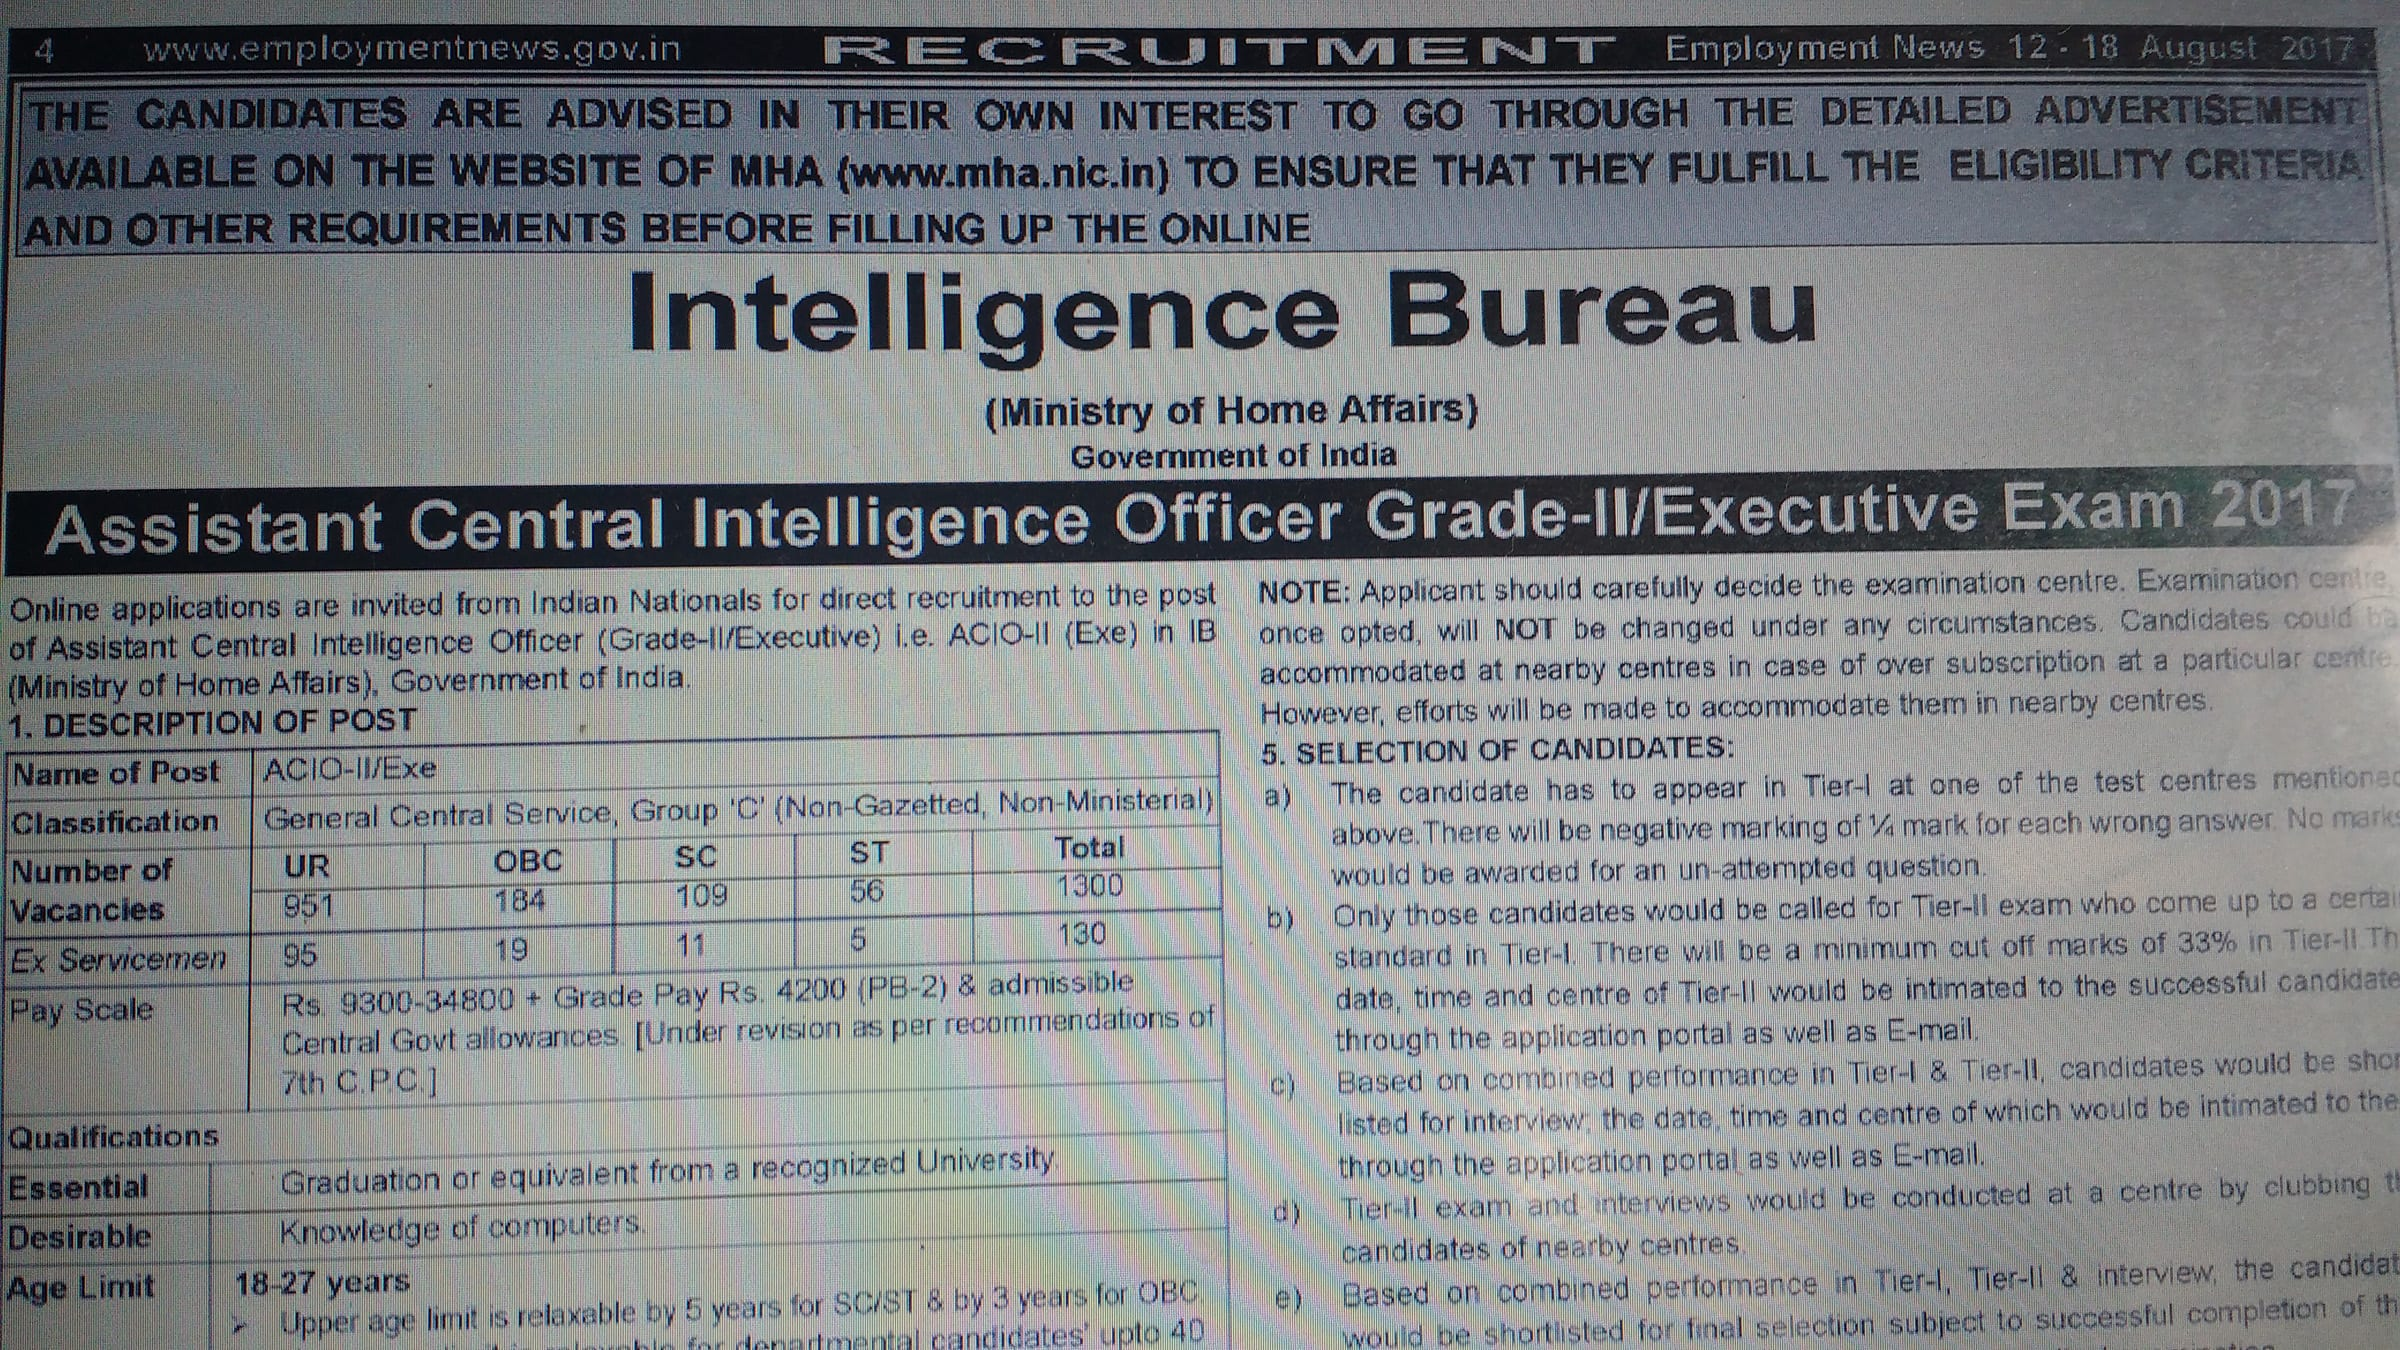 Ministry of Home Affairs releases notification for recruiting 1,430 candidates via Assistant Central Intelligence Officer Grade-II/Executive Exam 2017